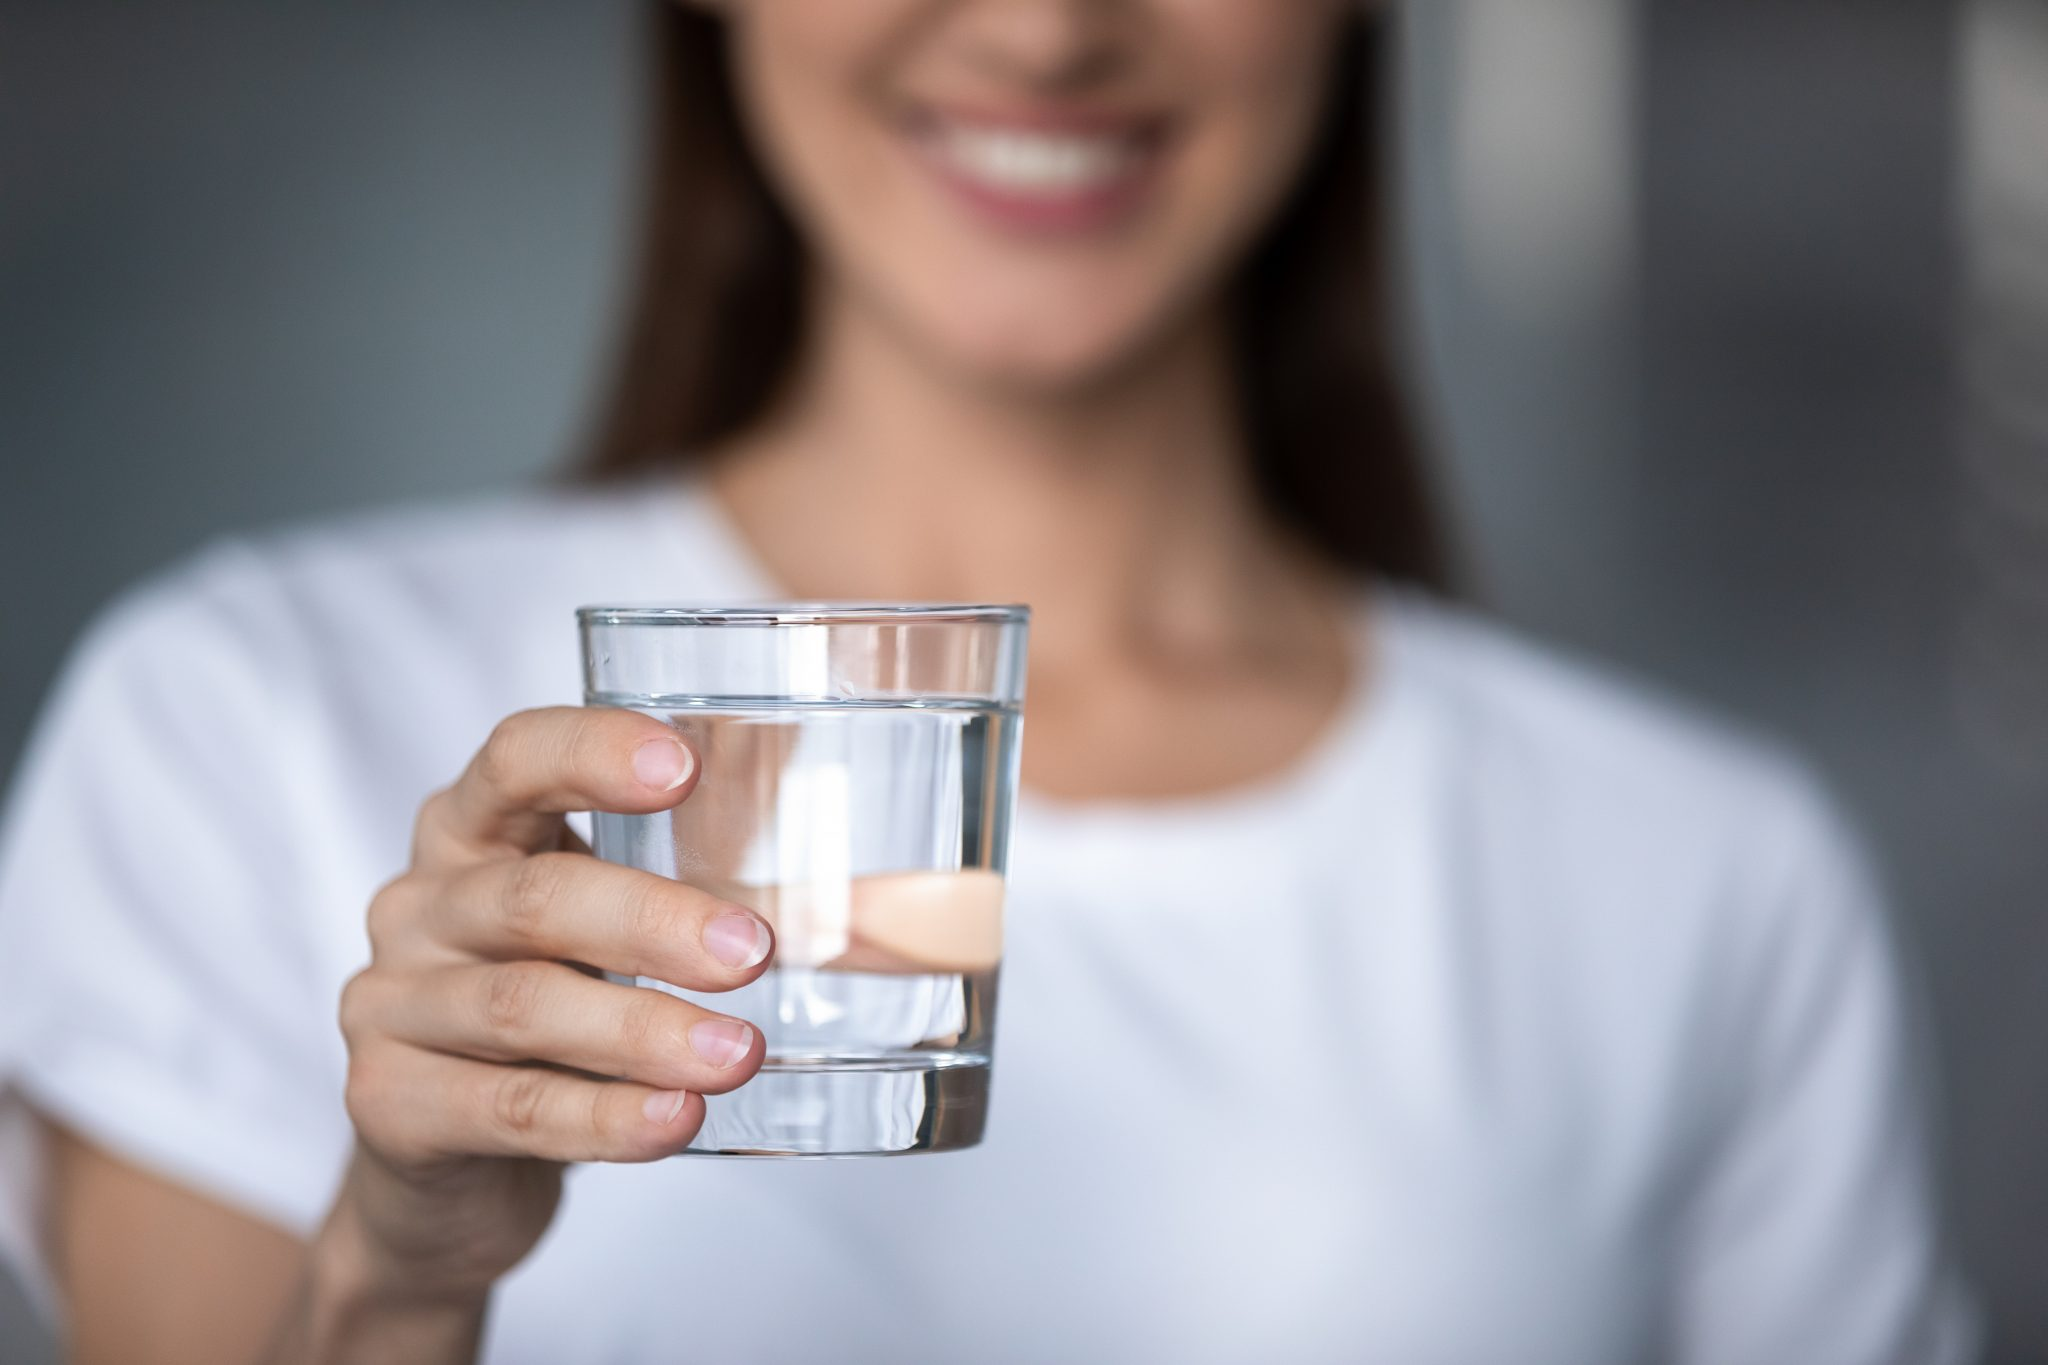 Smiling young lady holding a glass of water